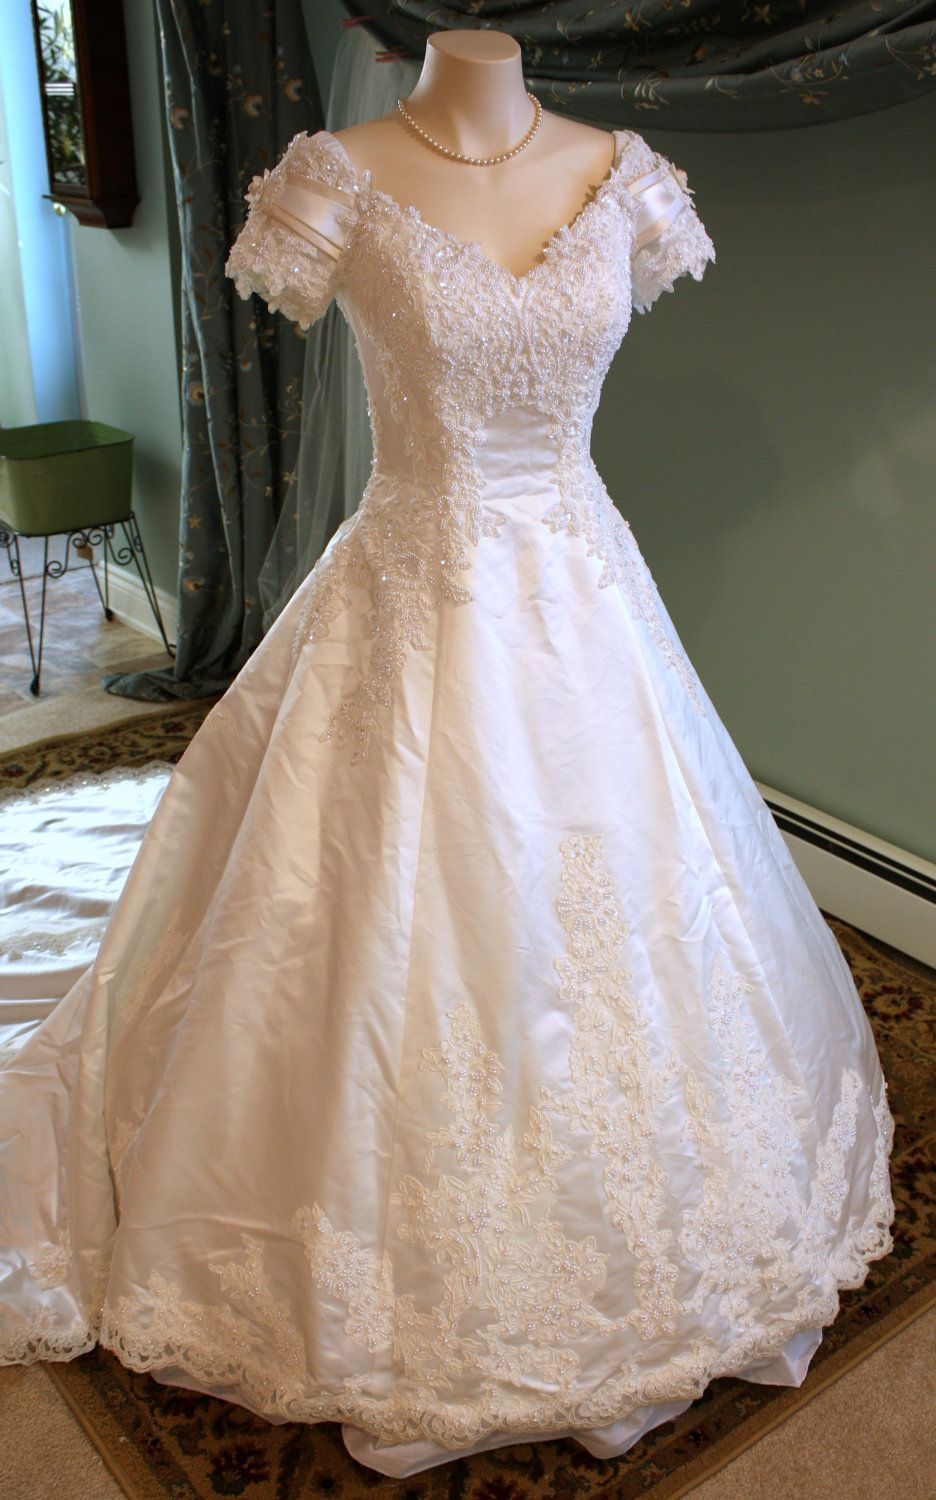 Size 8 wedding dress  SALE  Spectacular Off White Satin and Lace Vintage Wedding Gown